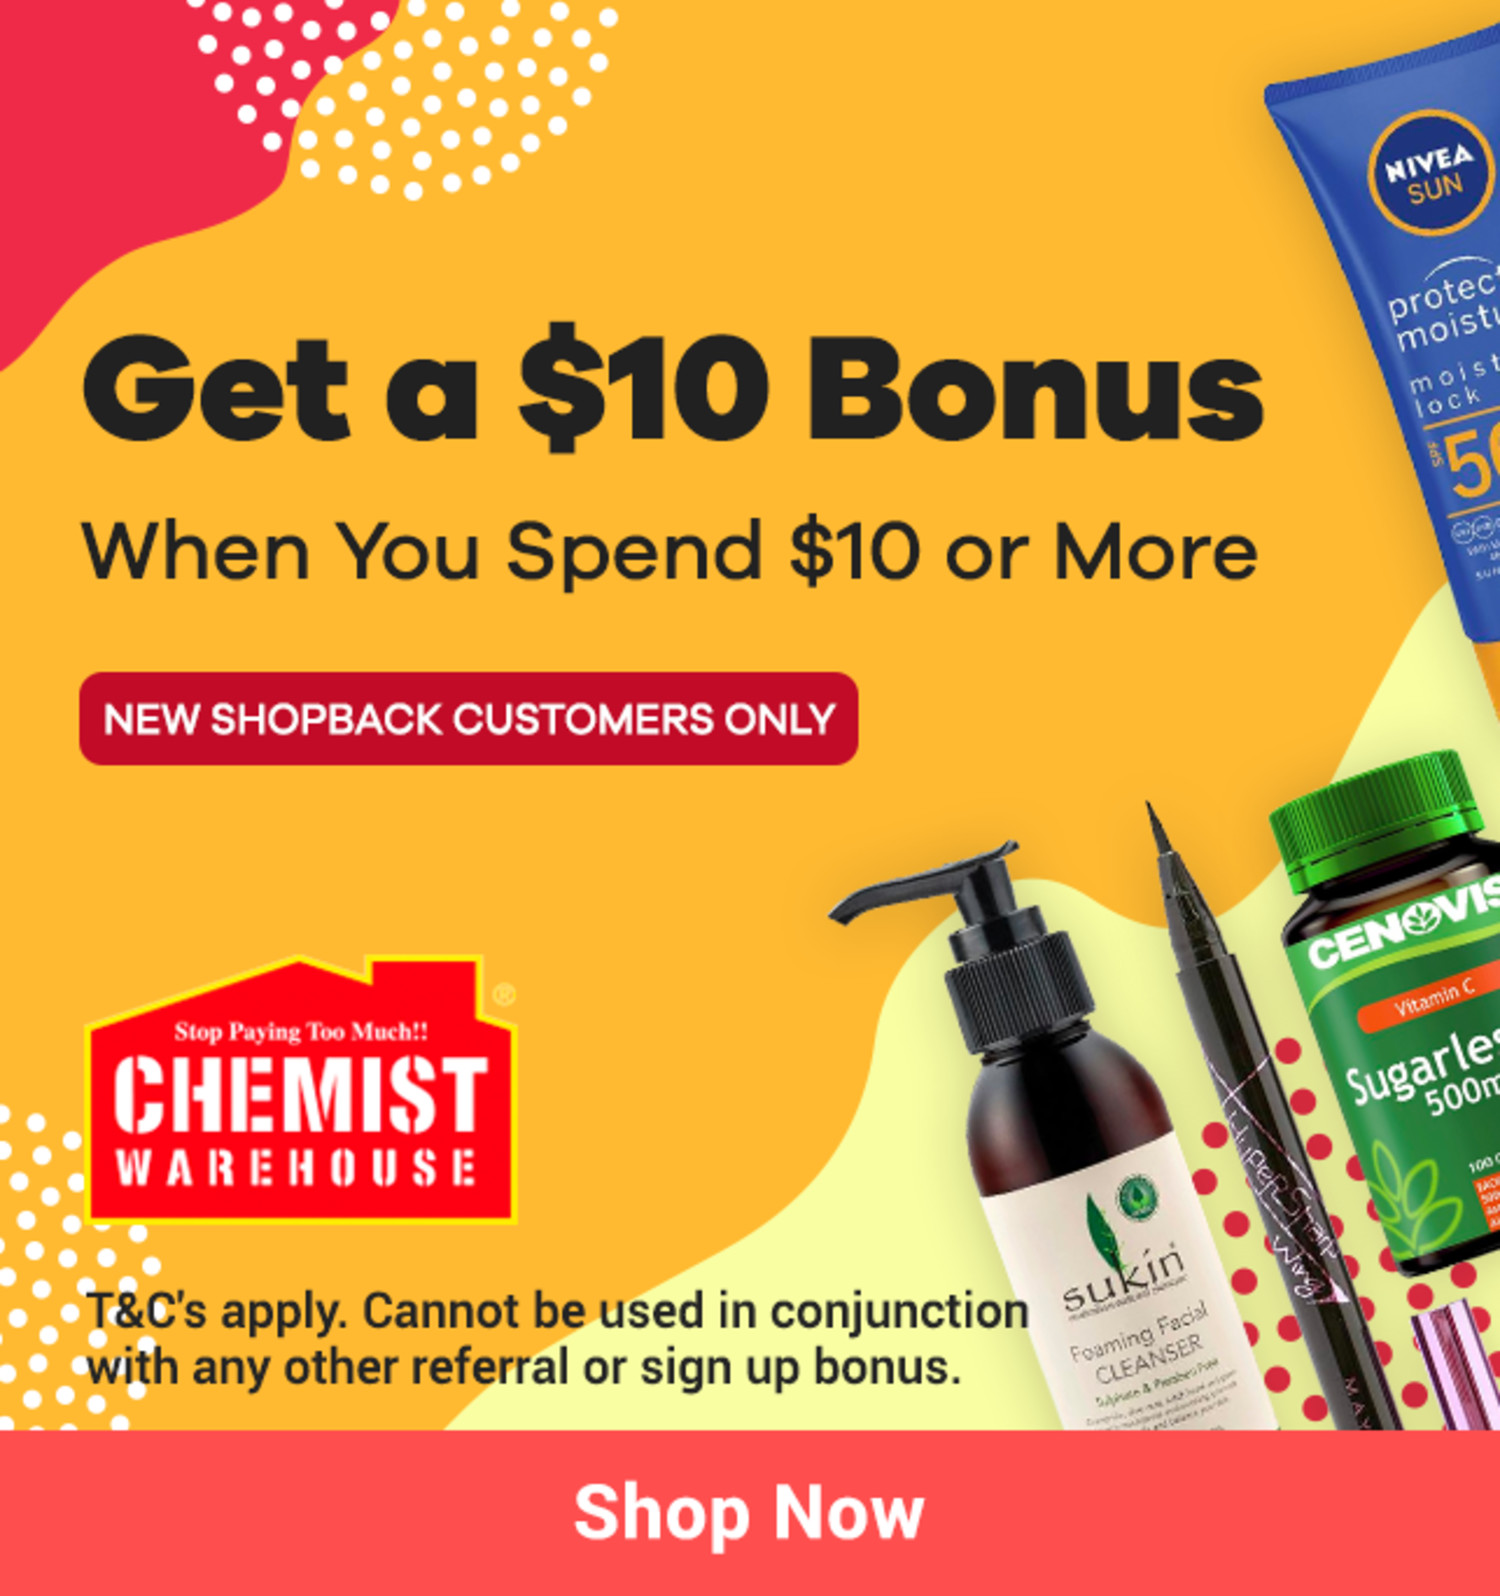 ShopBack - Chemist Warehouse - $10 Bonus - New Customer Offer